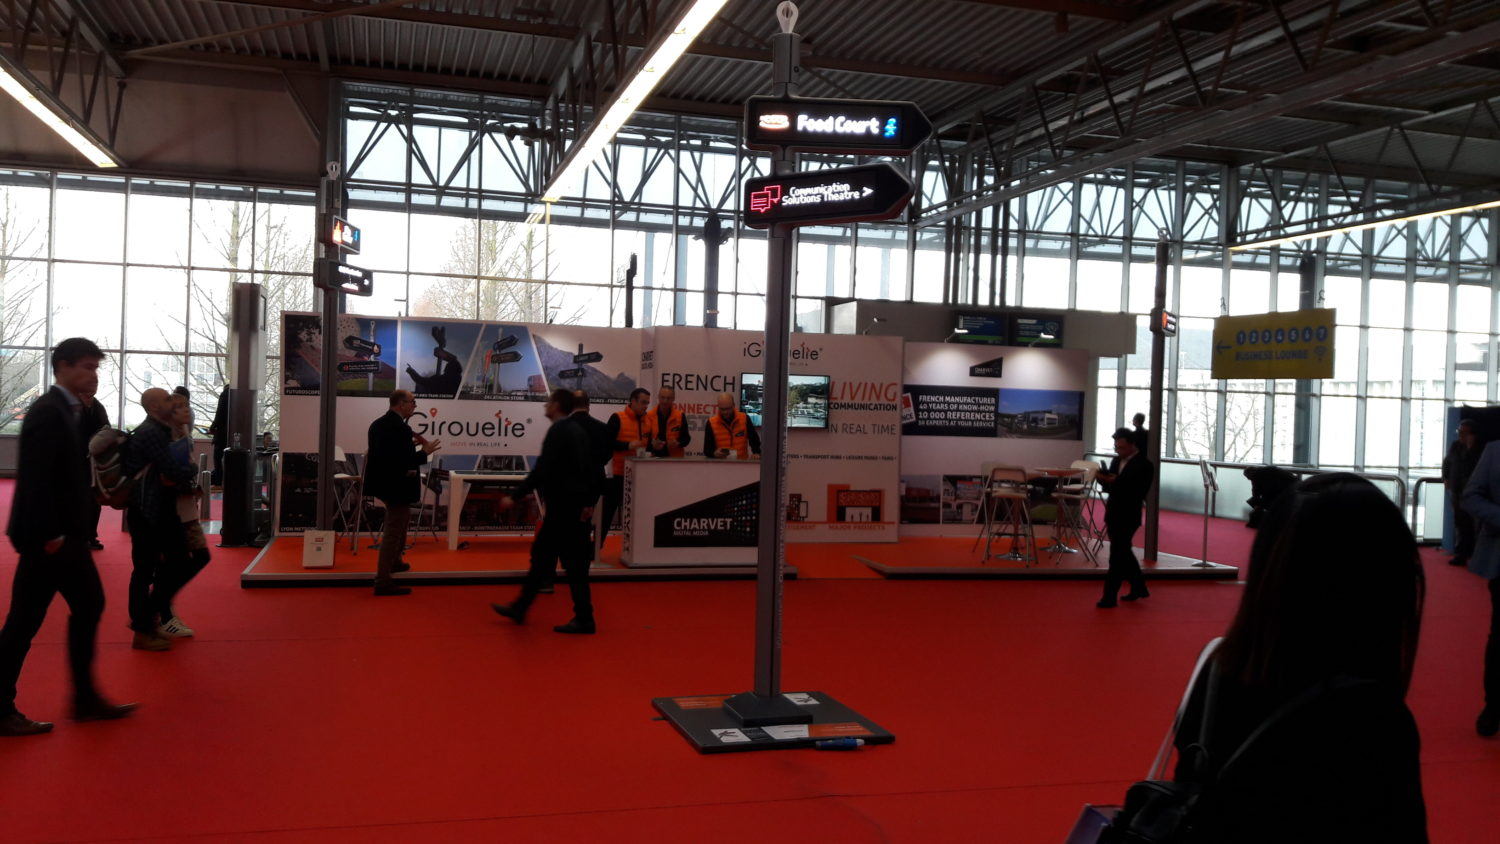 <strong>iGirouette®</strong> at Trade Fairs